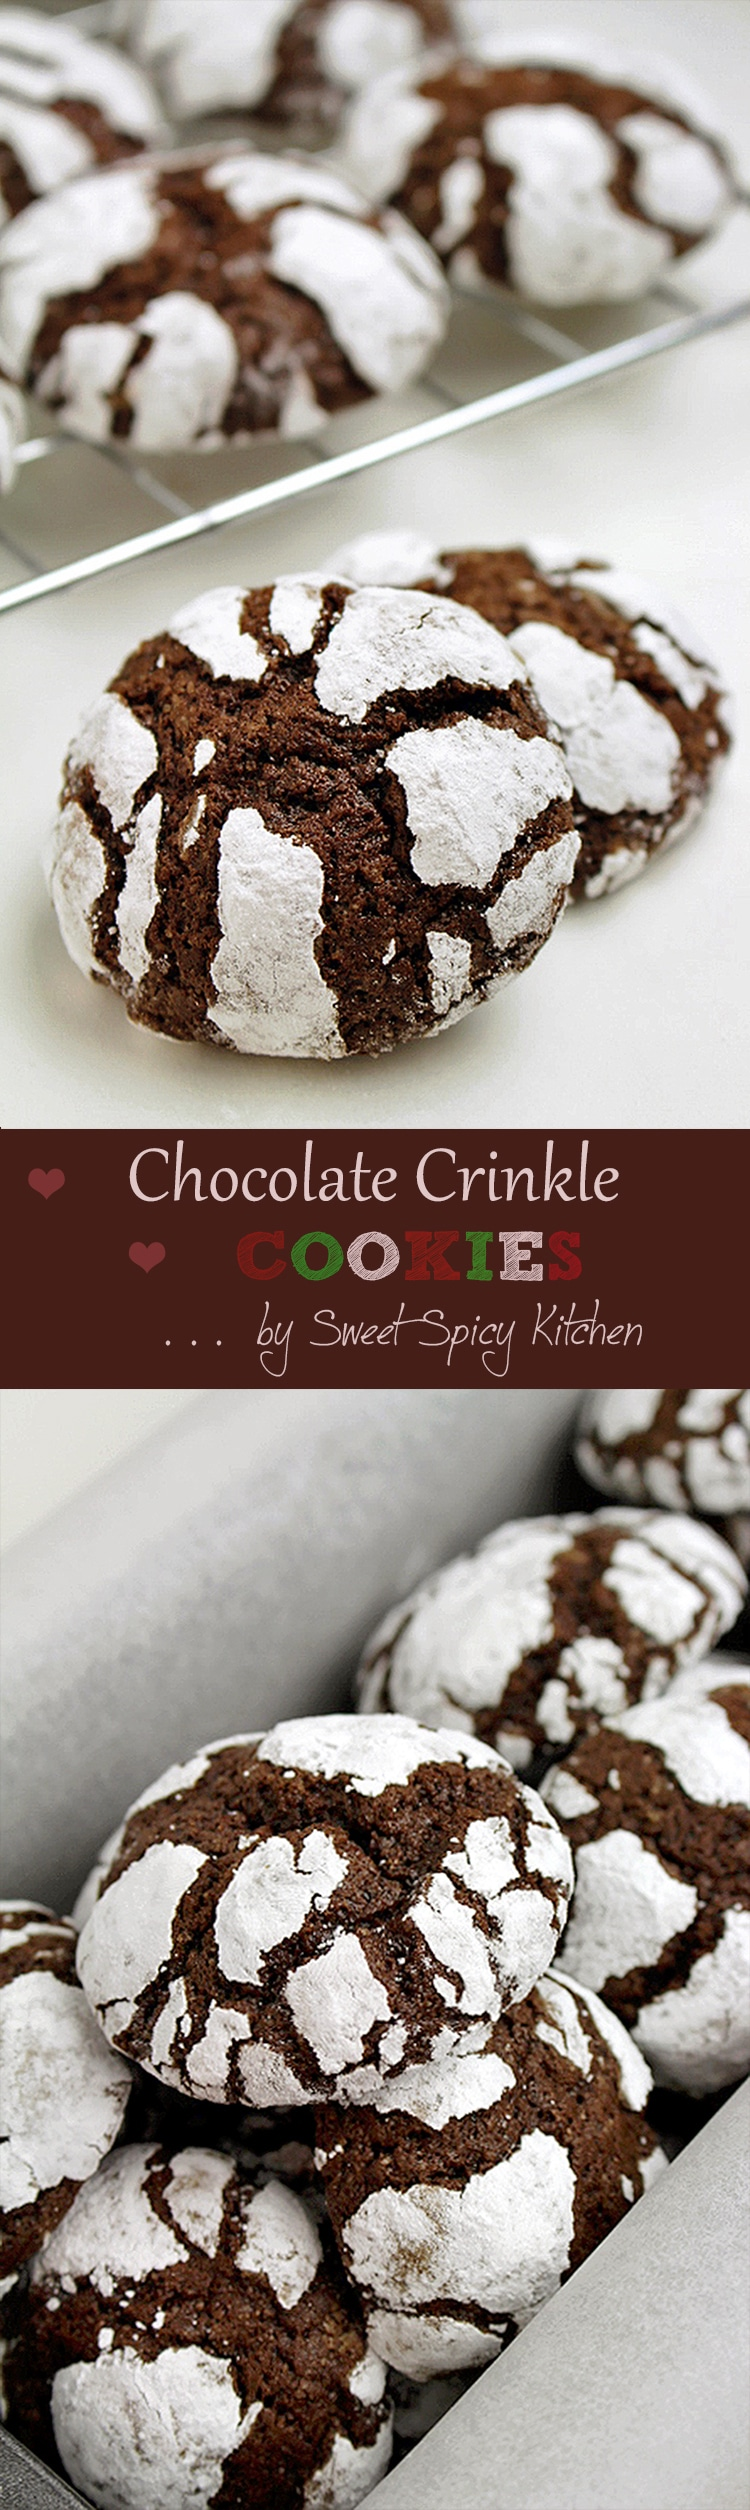 Untitled-333-Recovered Chocolate Crinkle Cookies